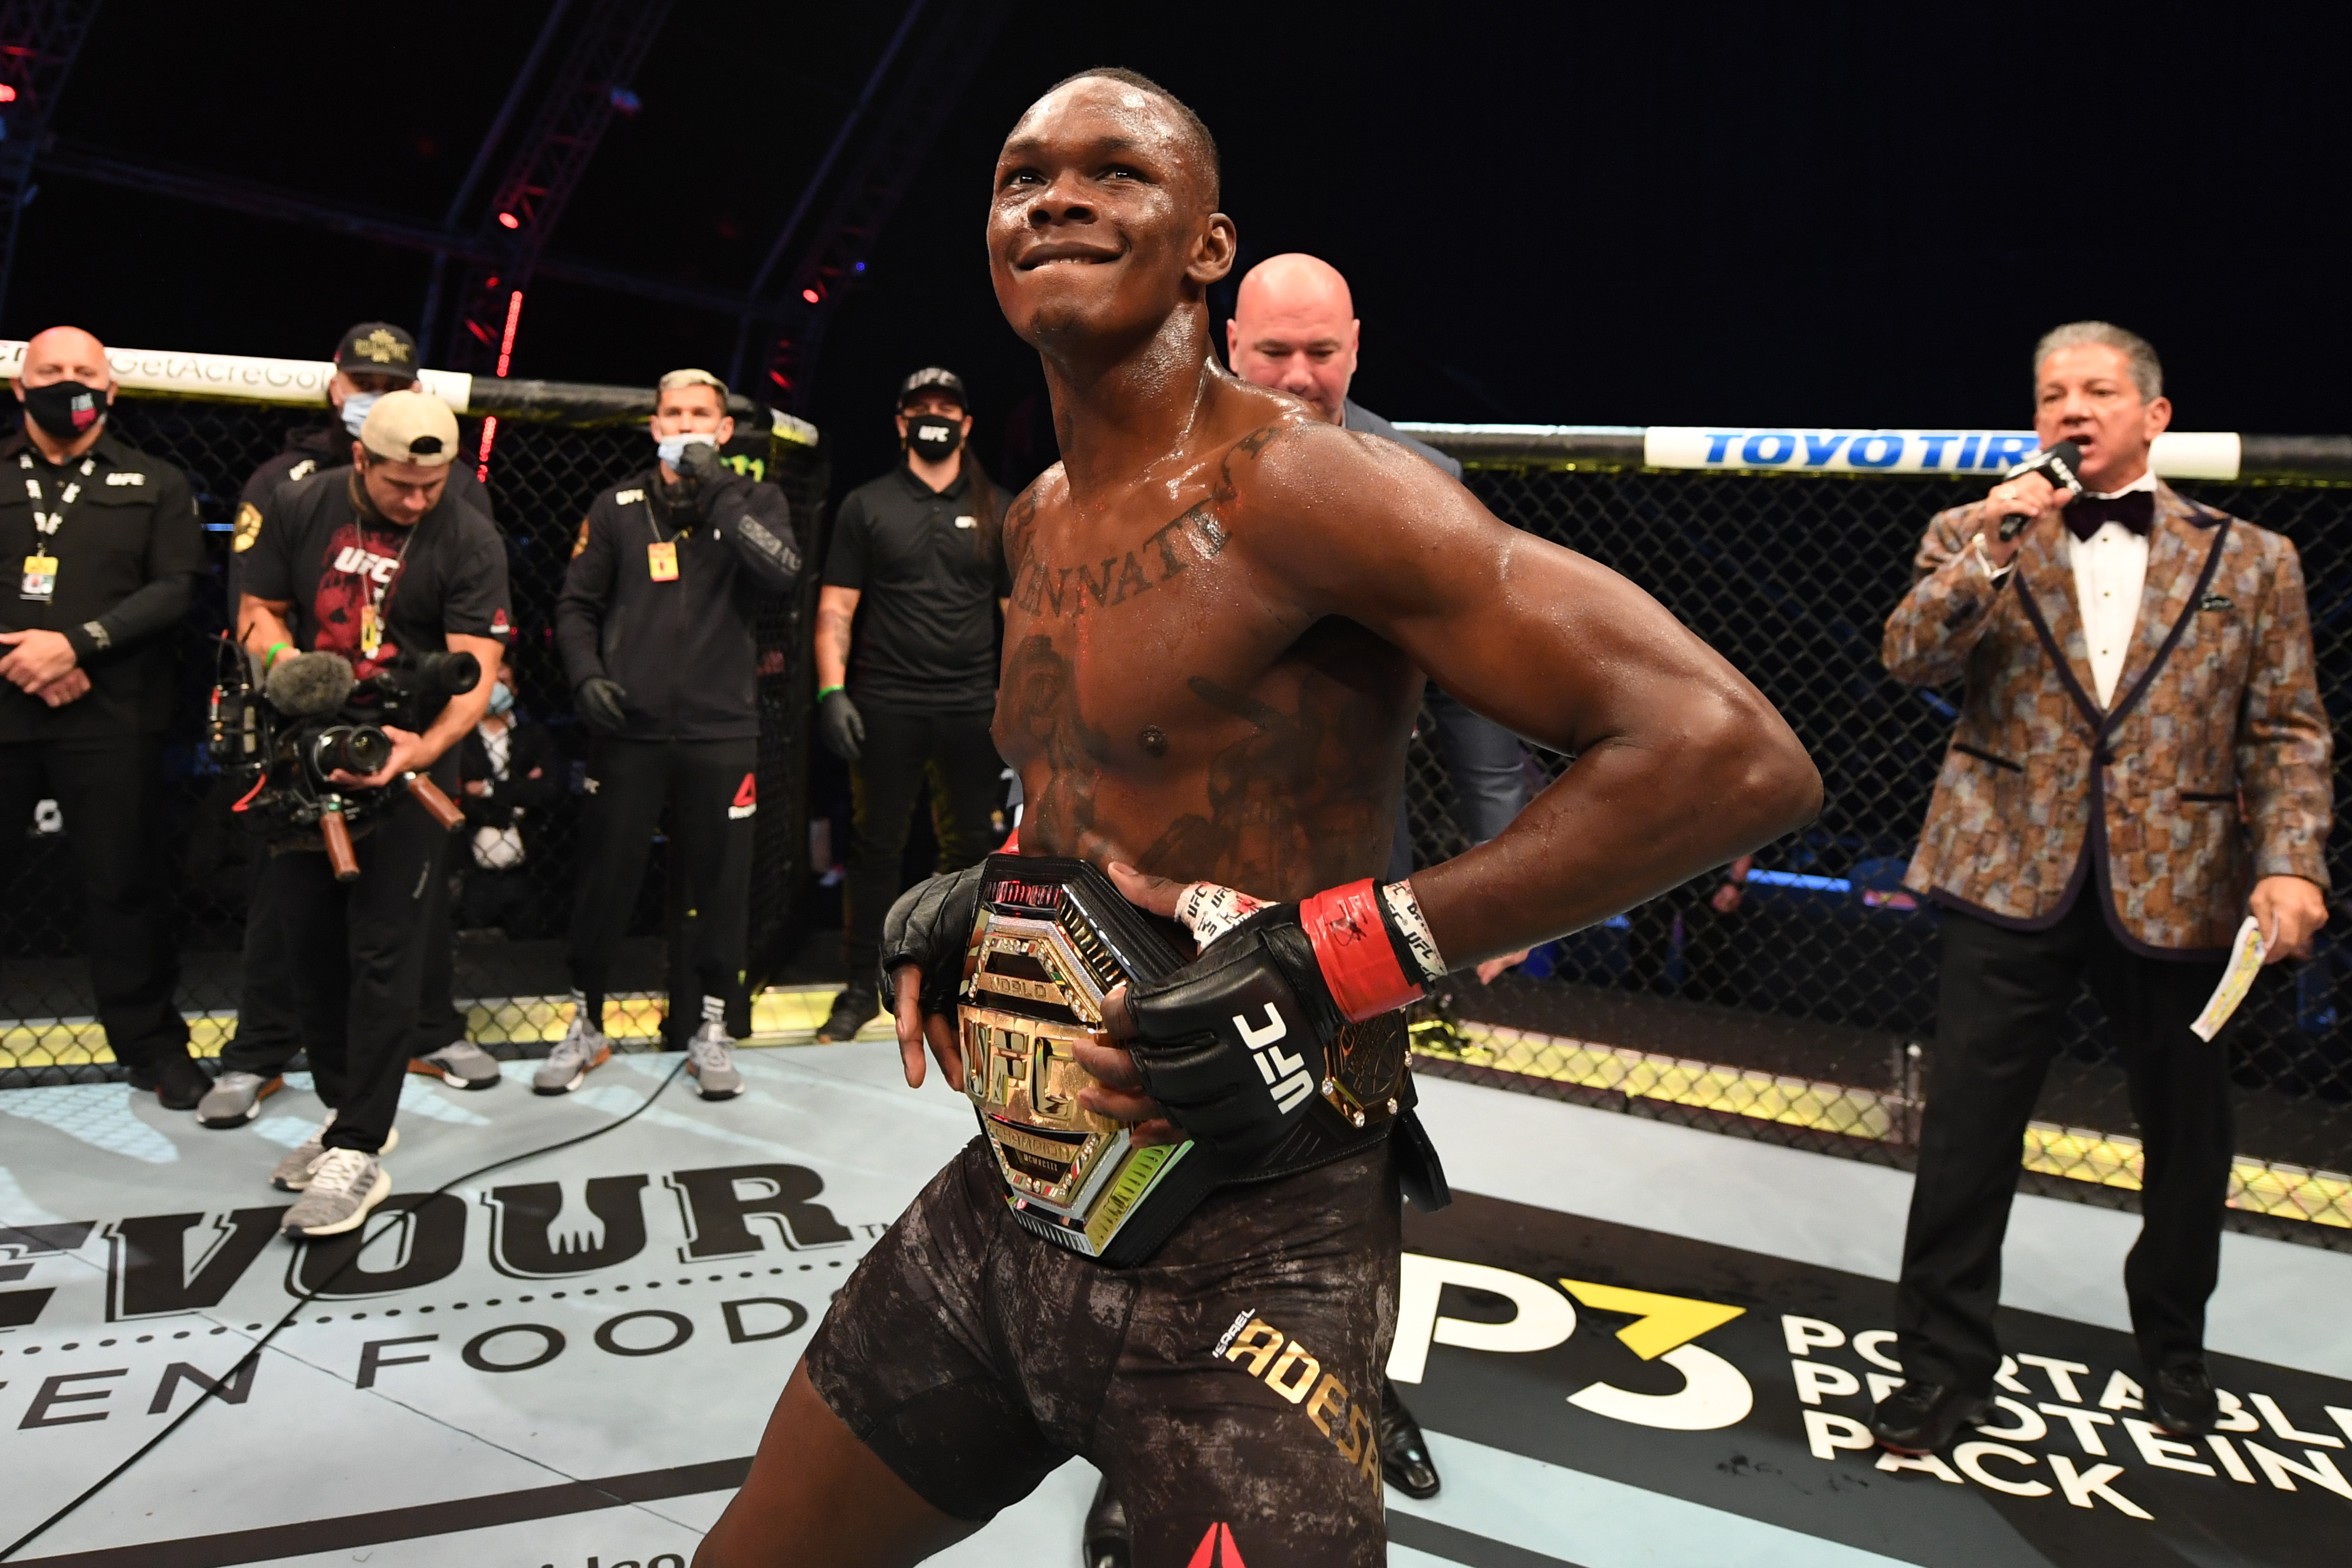 Israel Adesanya is favored over Marvin Vettori at UFC 263